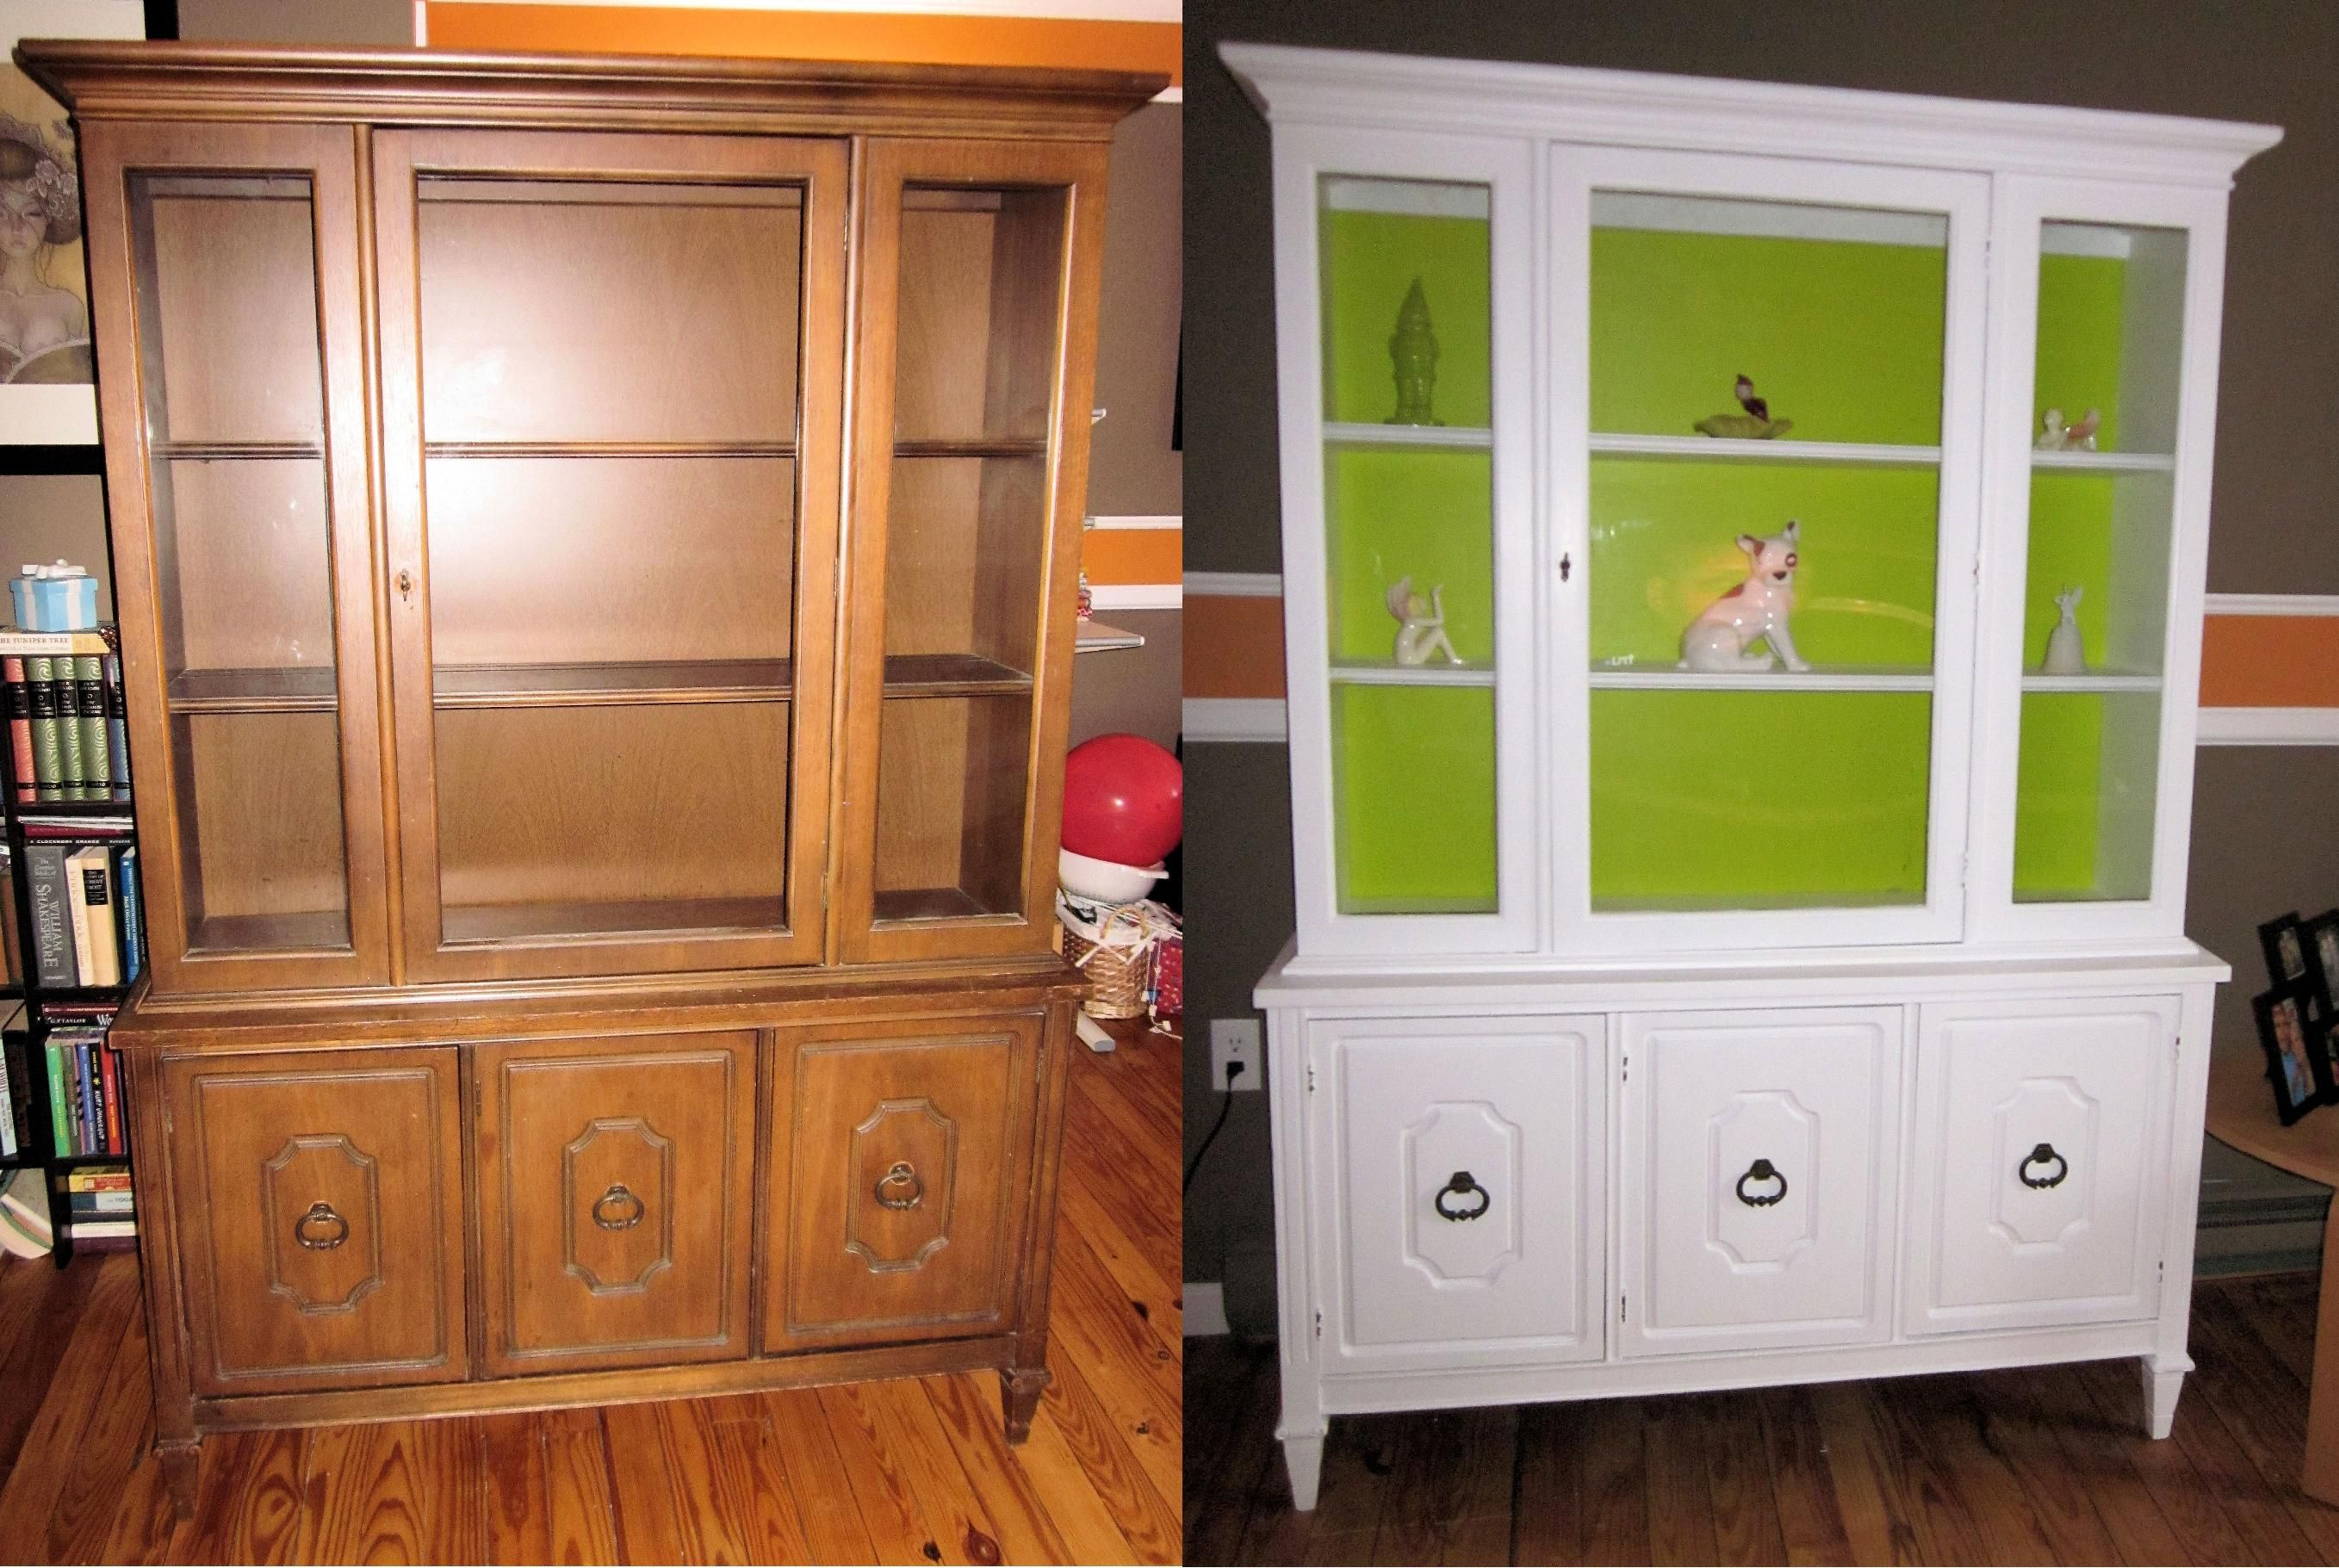 Repurposed furniture before and after before after for Repurposed furniture before and after